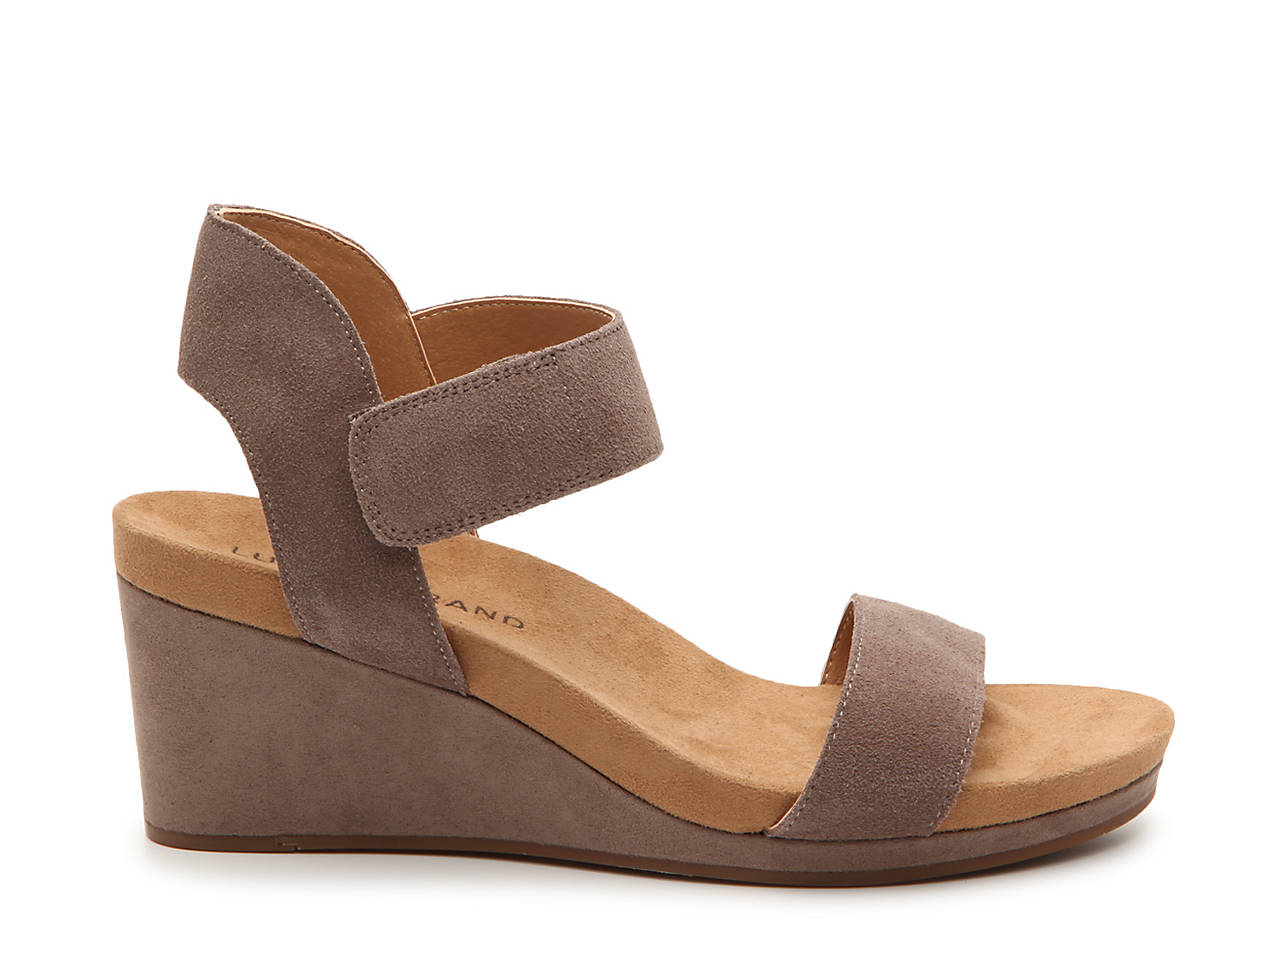 ae9eb79727f3 Lucky Brand Kamila Wedge Sandal Women s Shoes